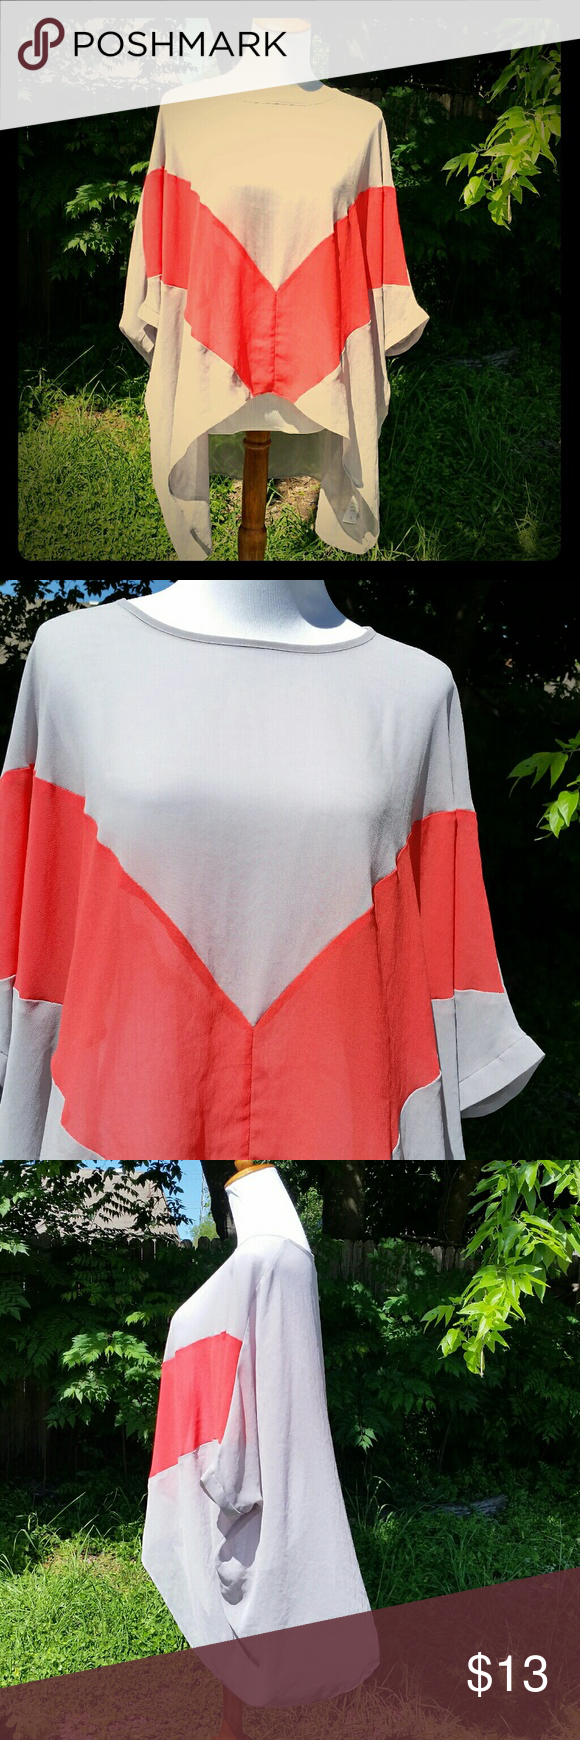 Flowy Silky top This is a very thin, breezy lightweight material. I know it looks huge, but it's meant for a size small person. The arm holes are small. This would look great over a swimsuit, jeans, or even shorts. The possibilities are endless. Super cute. Hot & Delicious  Tops